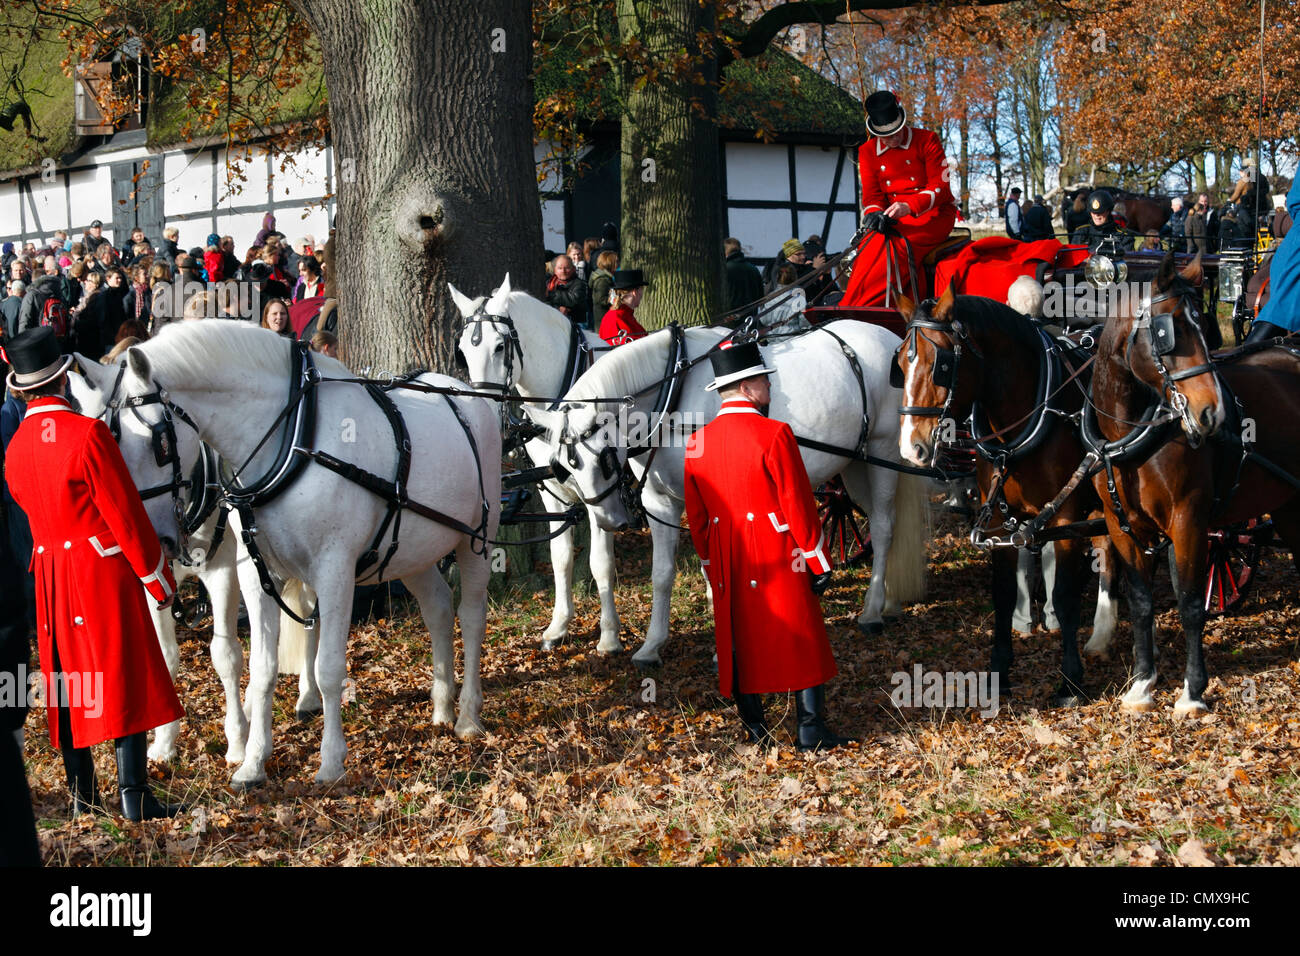 Horses, horse-drawn carriages and coachmen for the royal guests at the Hubertus Hunting in Dyrehaven just north - Stock Image